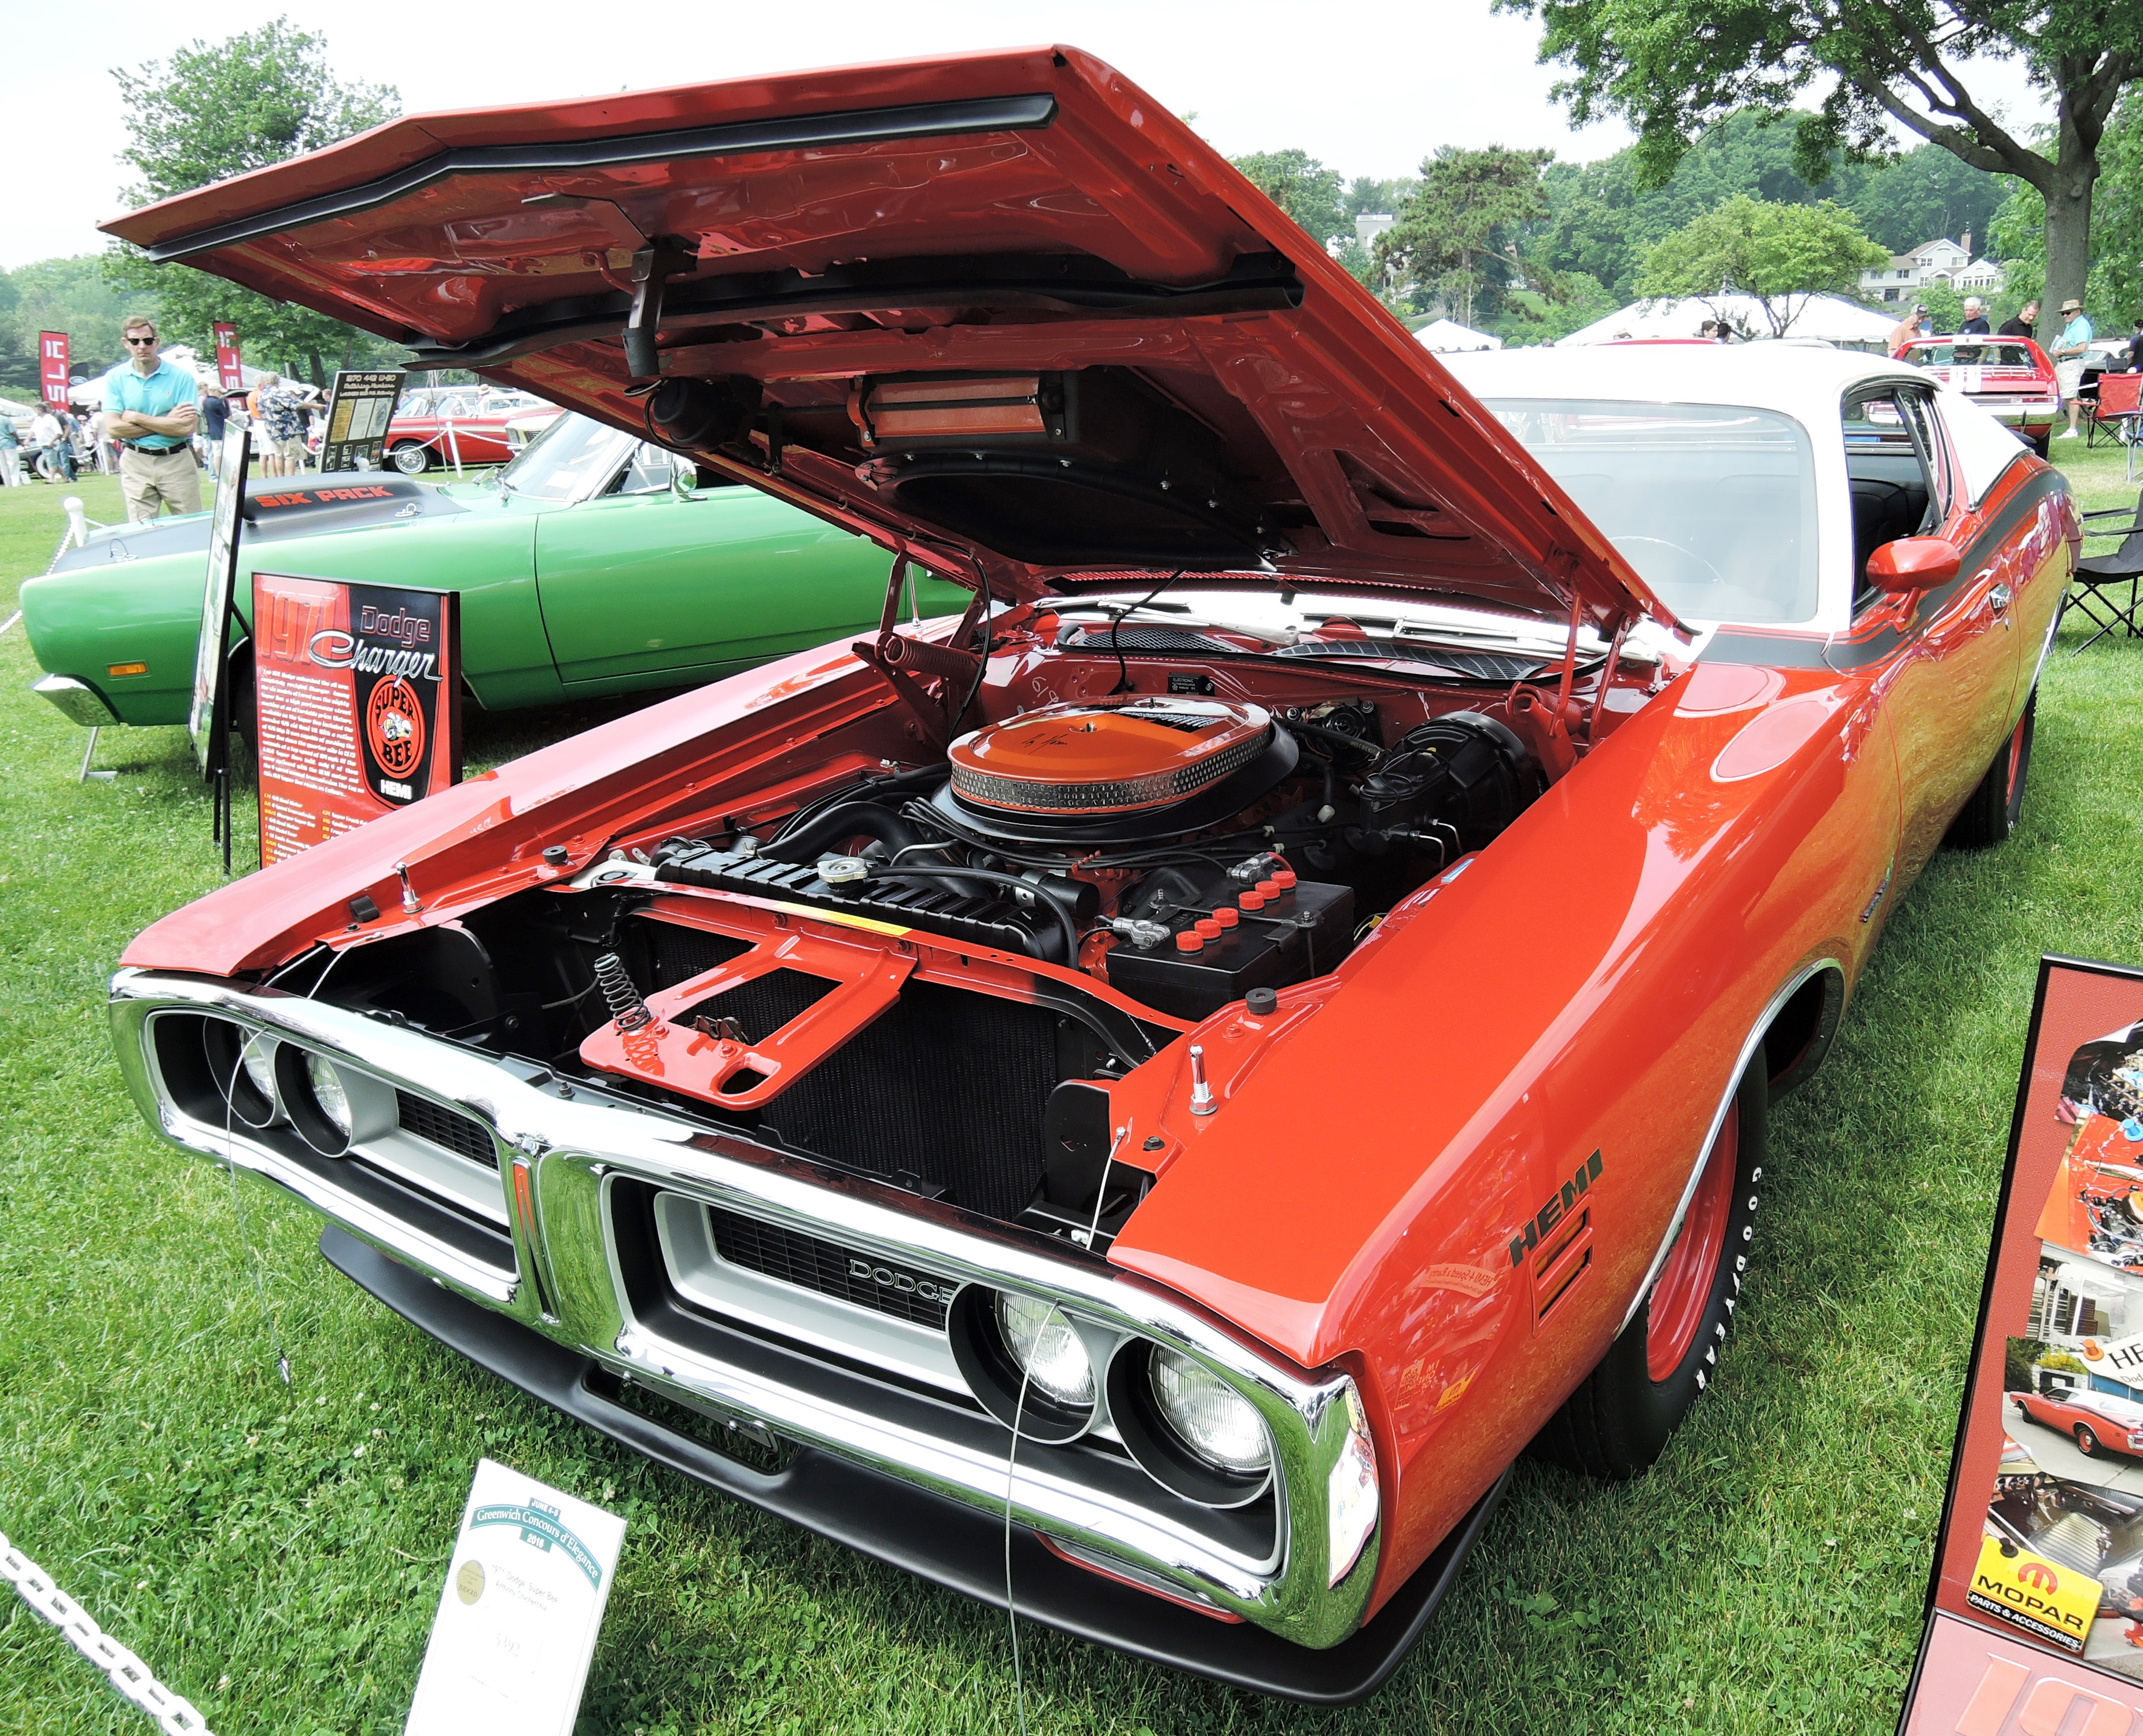 orange 1971 Dodge Super Bee - greenwich concours